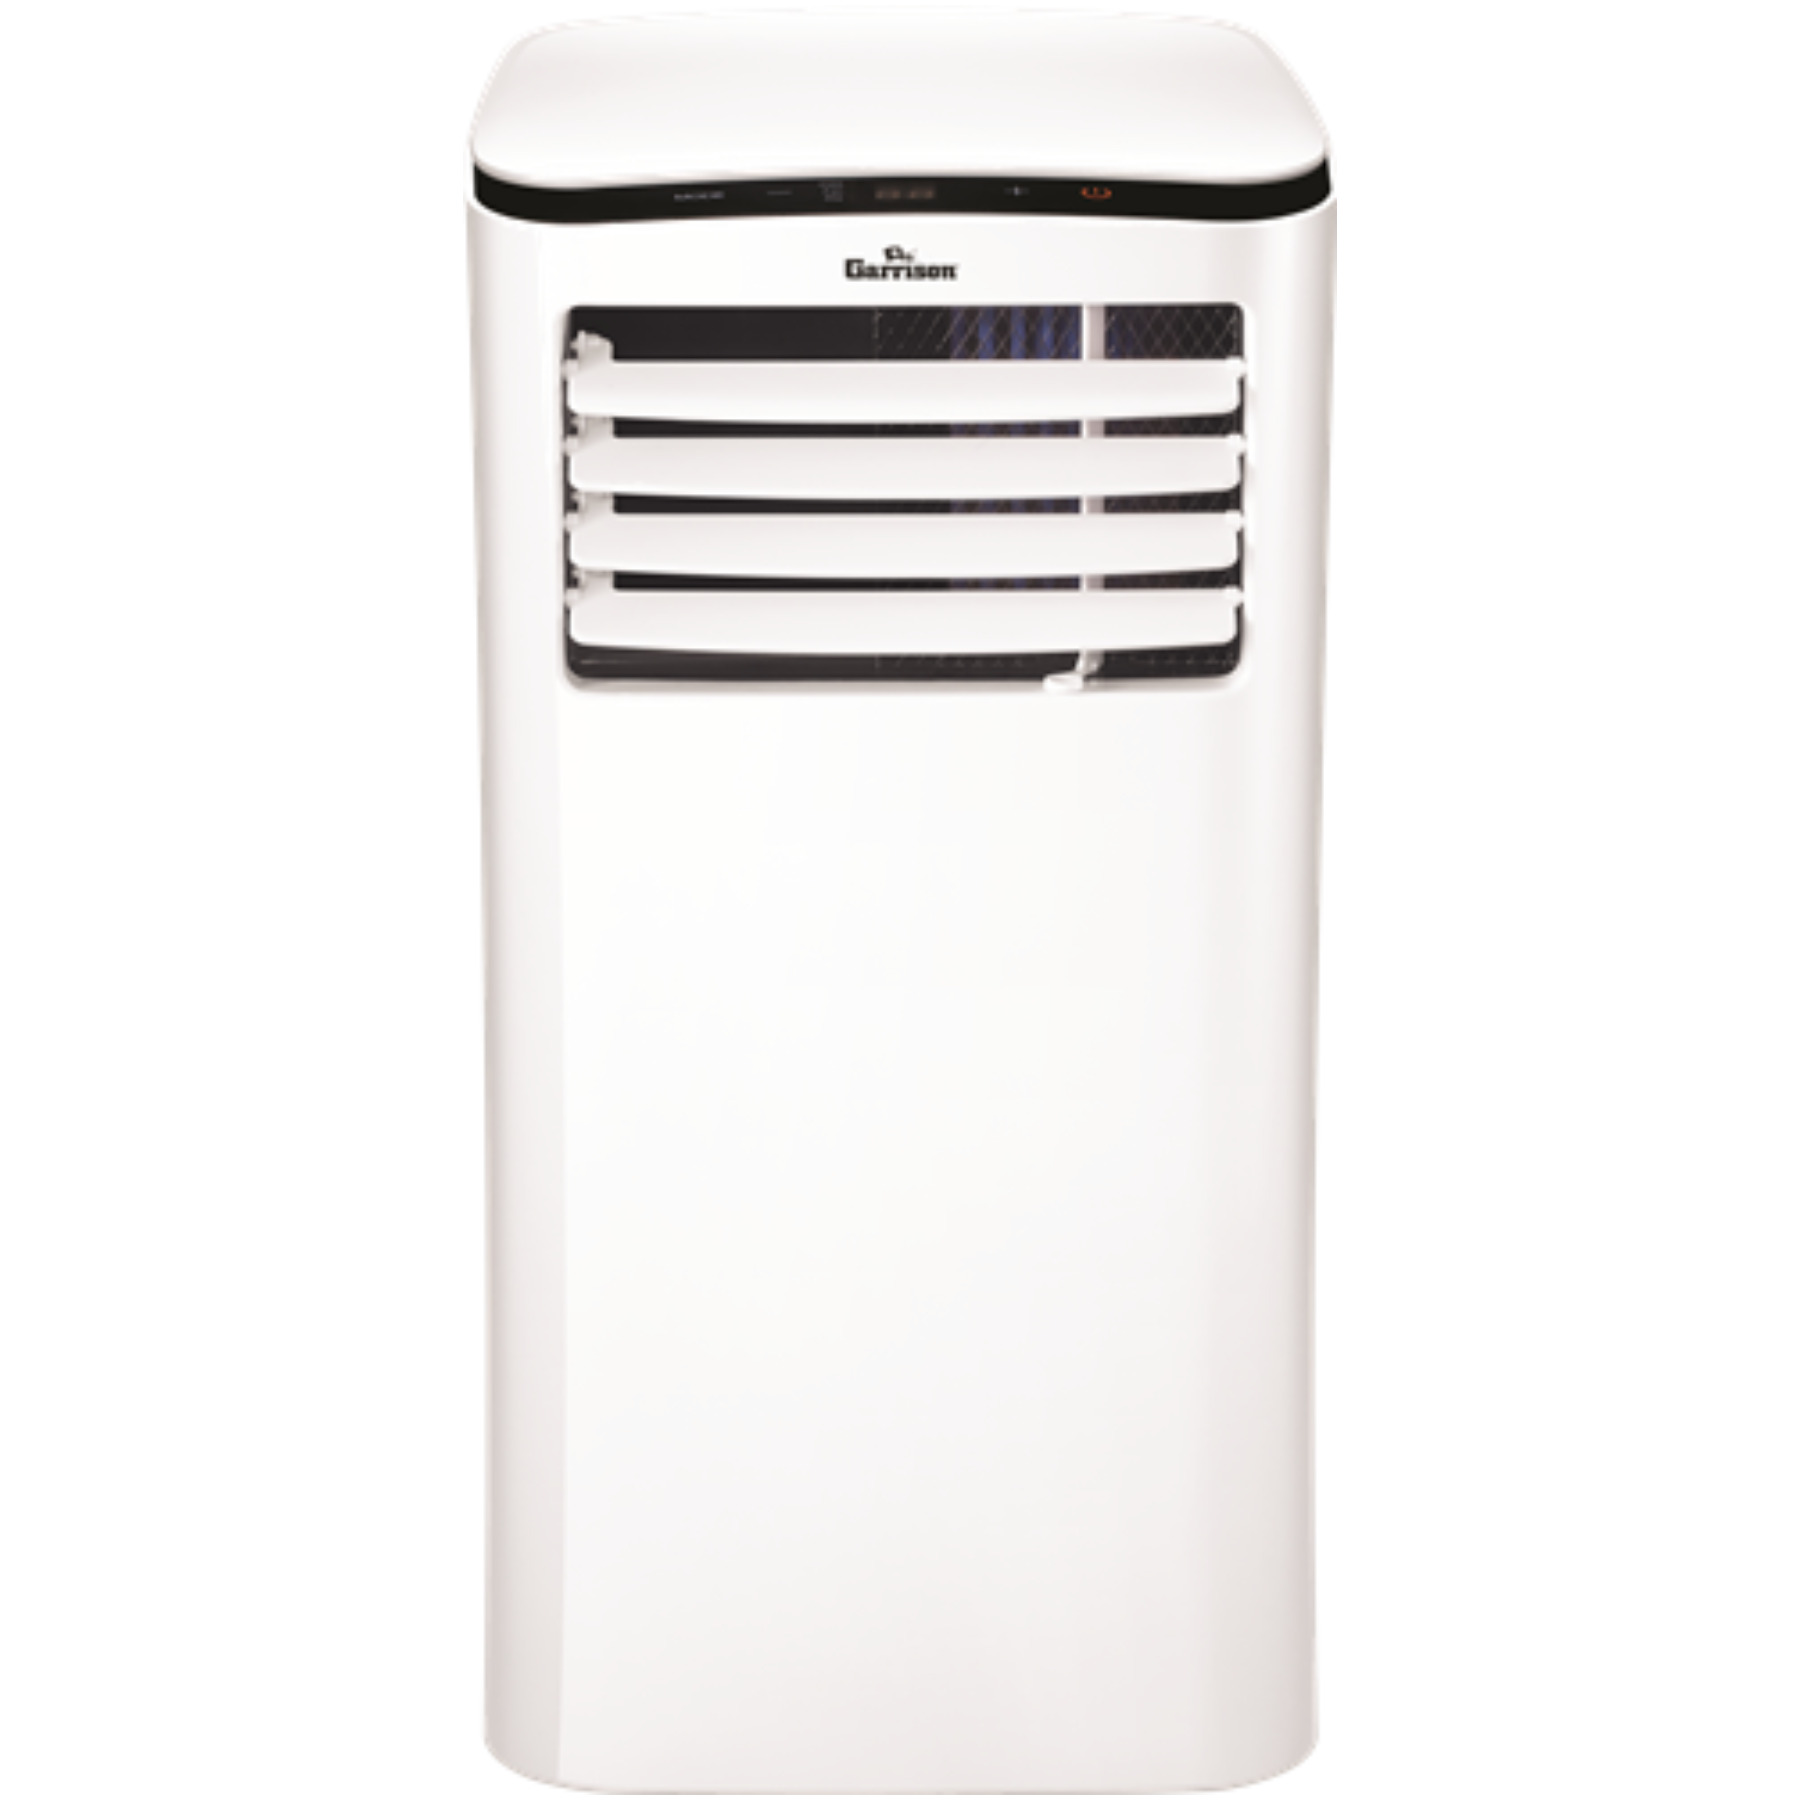 GARRISON� PORTABLE AIR CONDITIONER, 10,000 BTU, 115 VOLTS, COOL ONLY